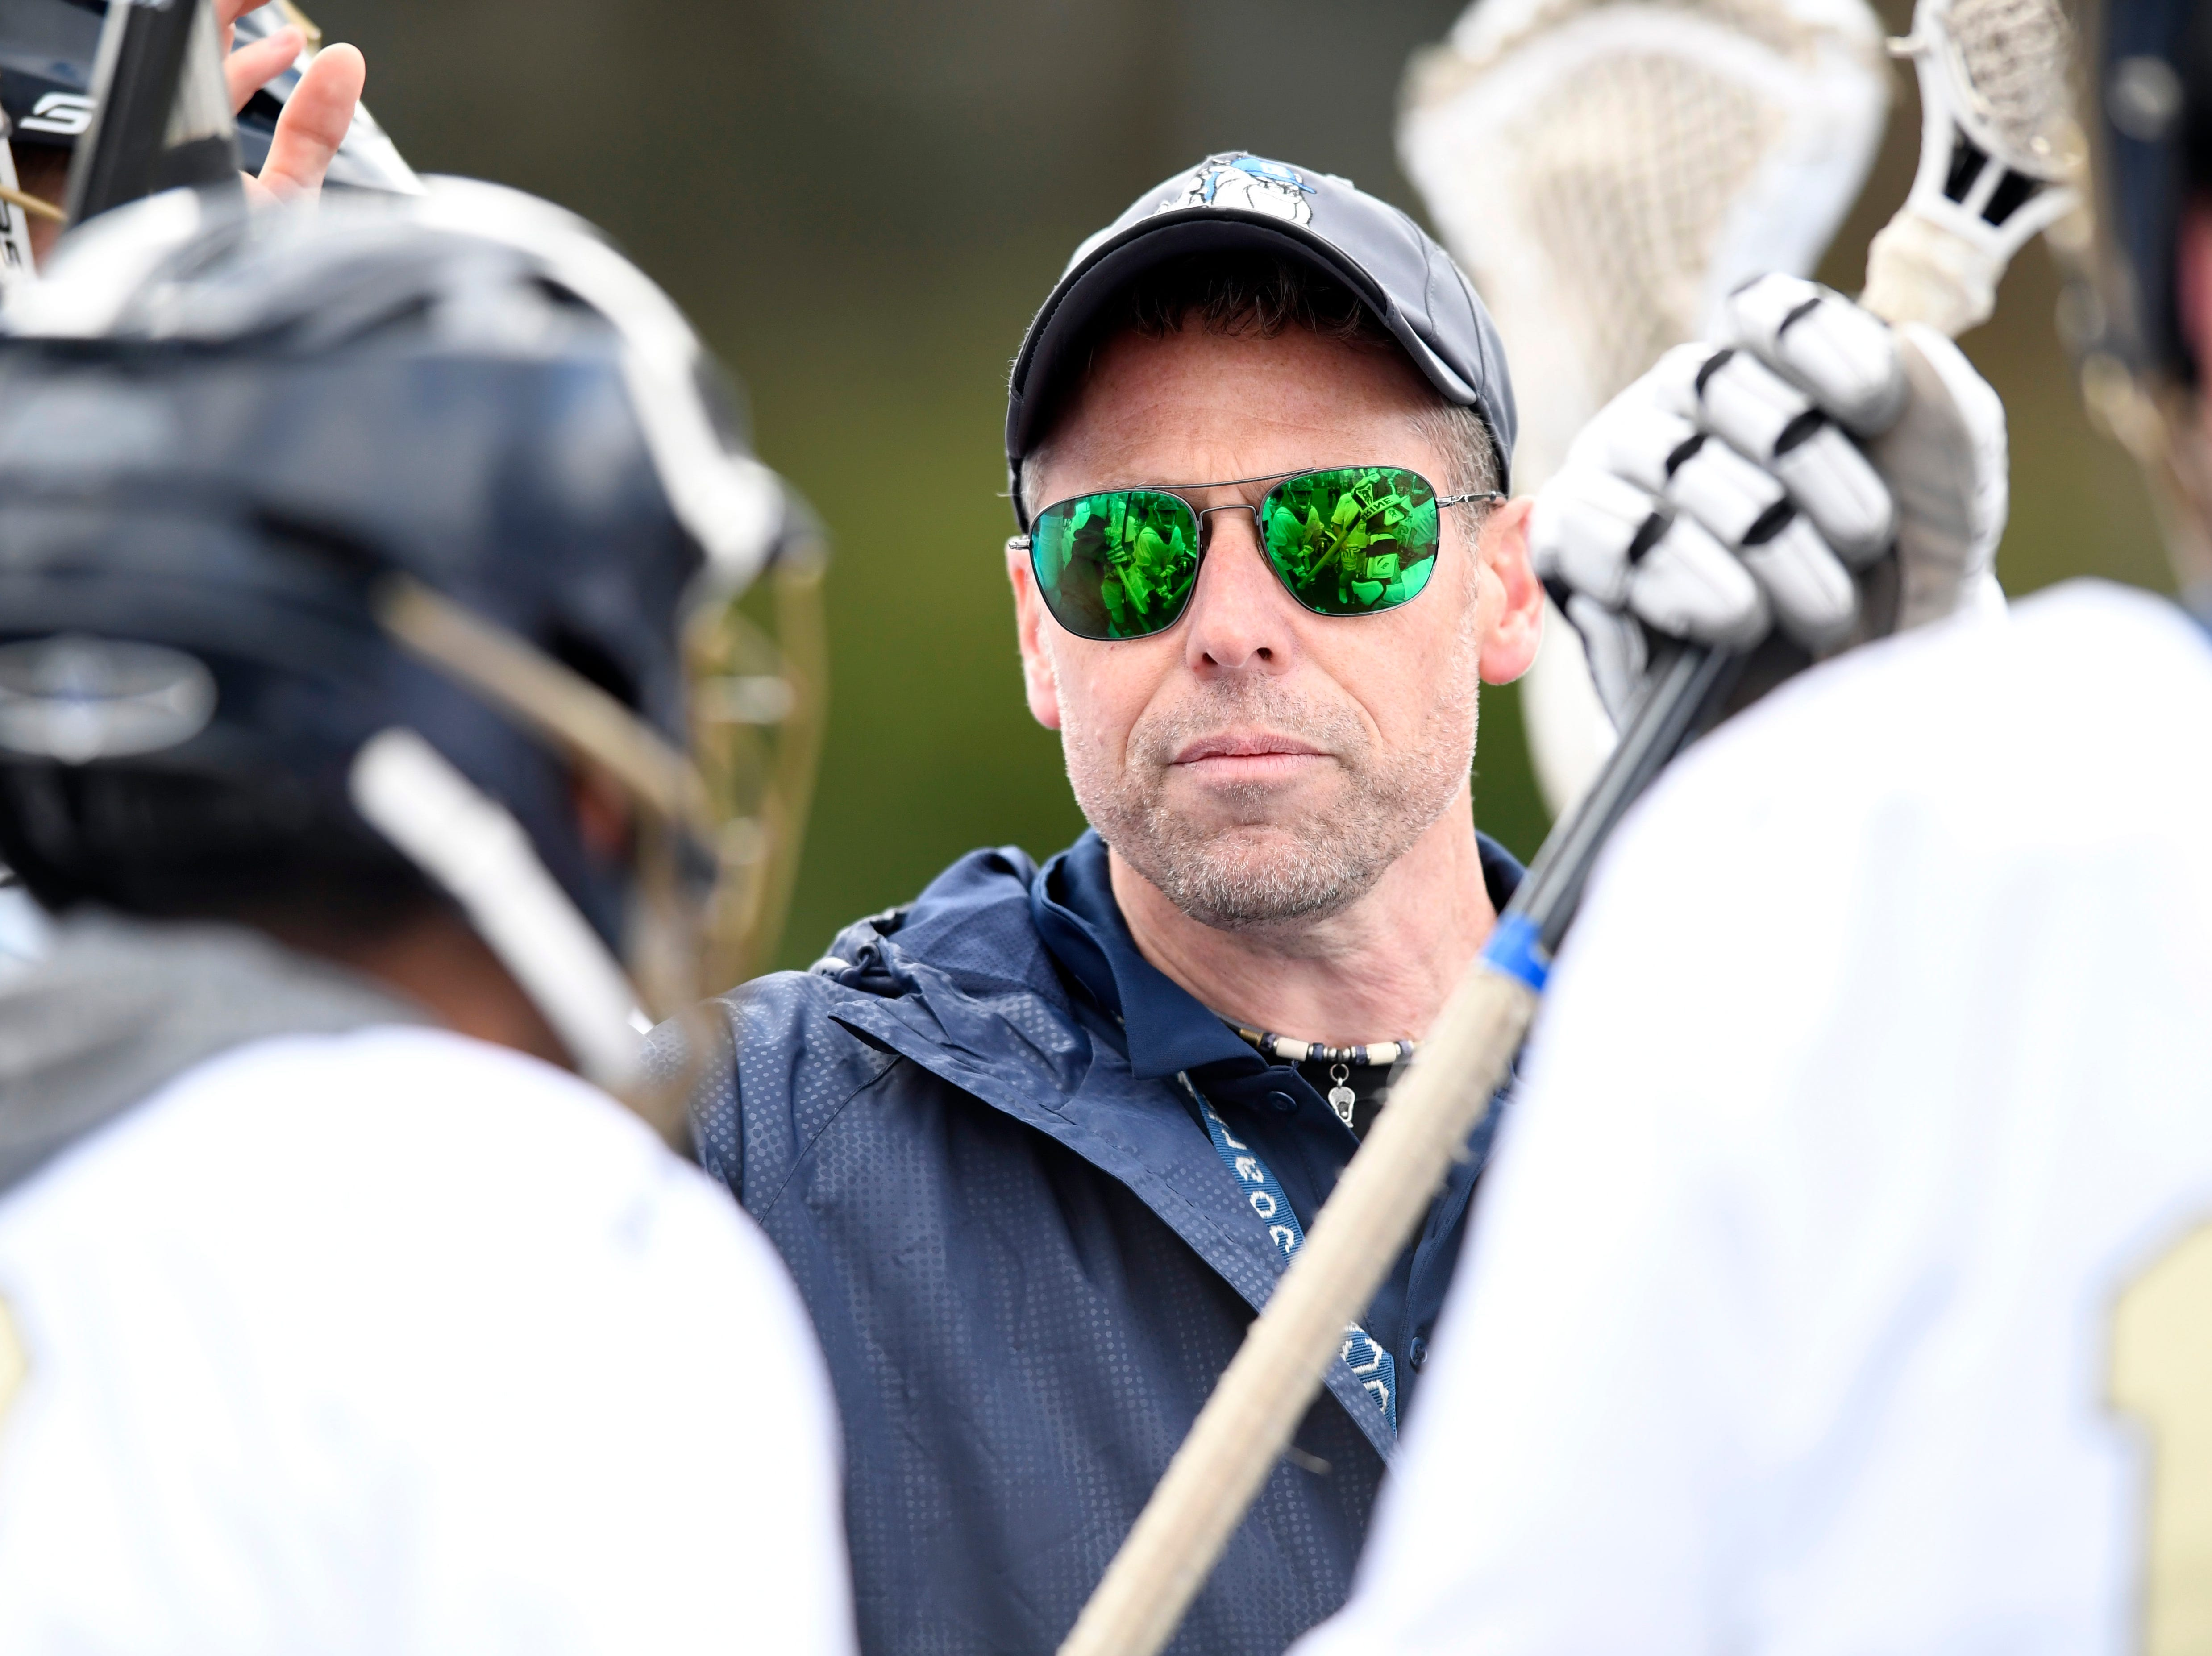 Dwight-Englewood boys lacrosse head coach Craig Lapierre talks to his team before they face Tenafly on Monday, April 15, 2019, in Englewood.